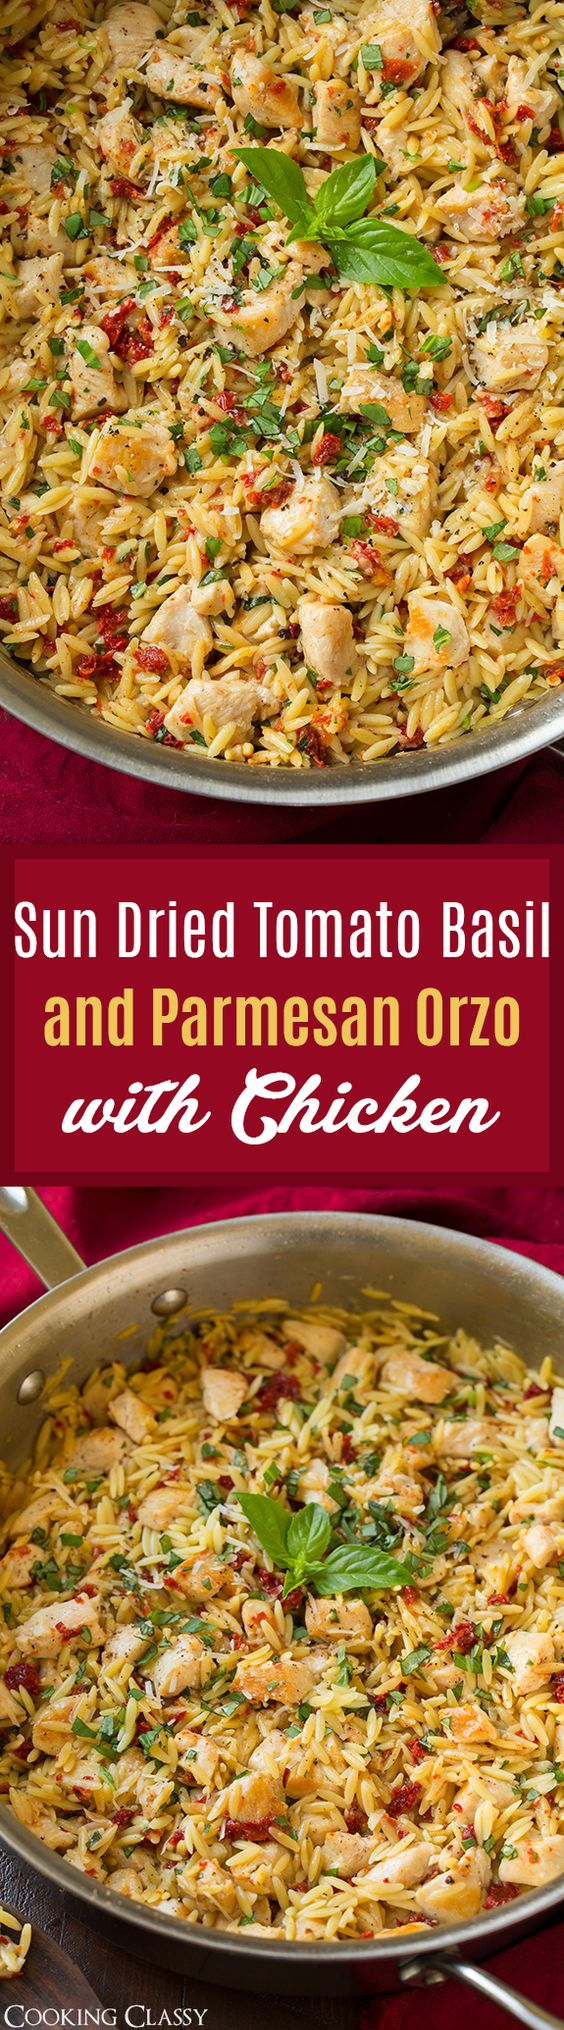 Sun Dried Tomato Basil and Parmesan Orzo with Chicken | Recipe | Sun ...